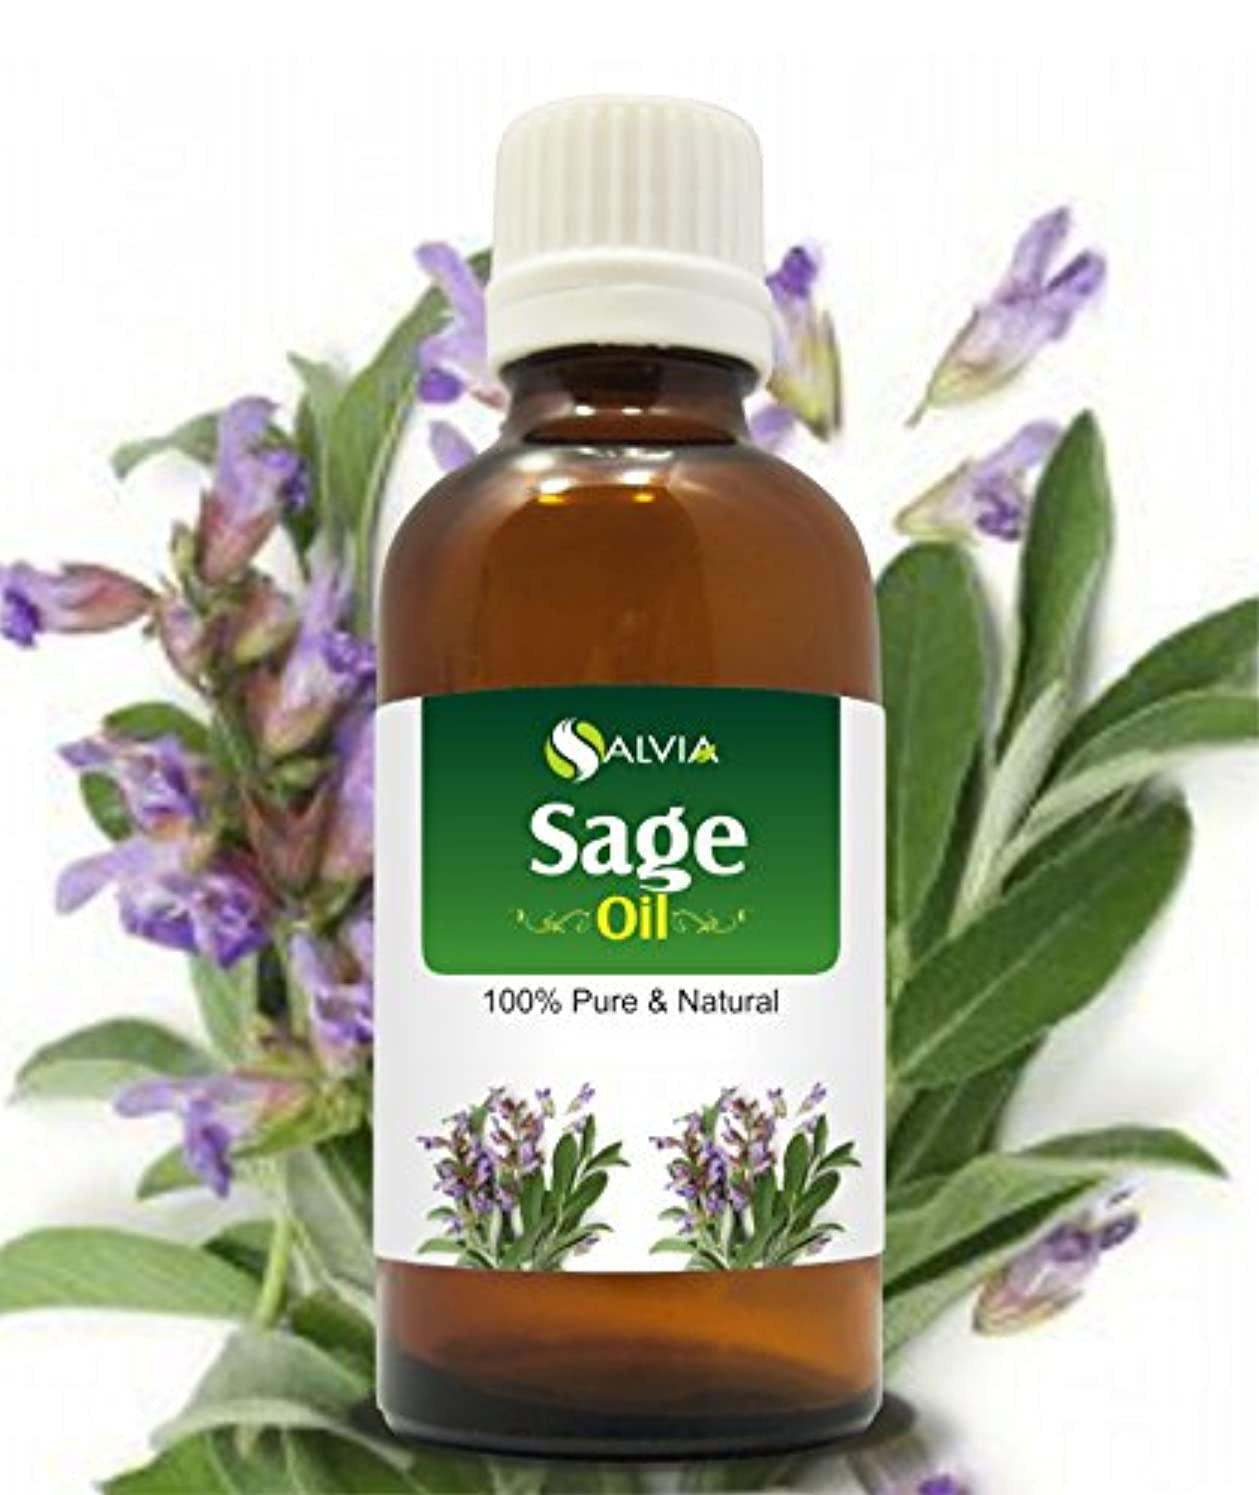 SAGE OIL 100% NATURAL PURE UNDILUTED UNCUT ESSENTIAL OIL 30ML